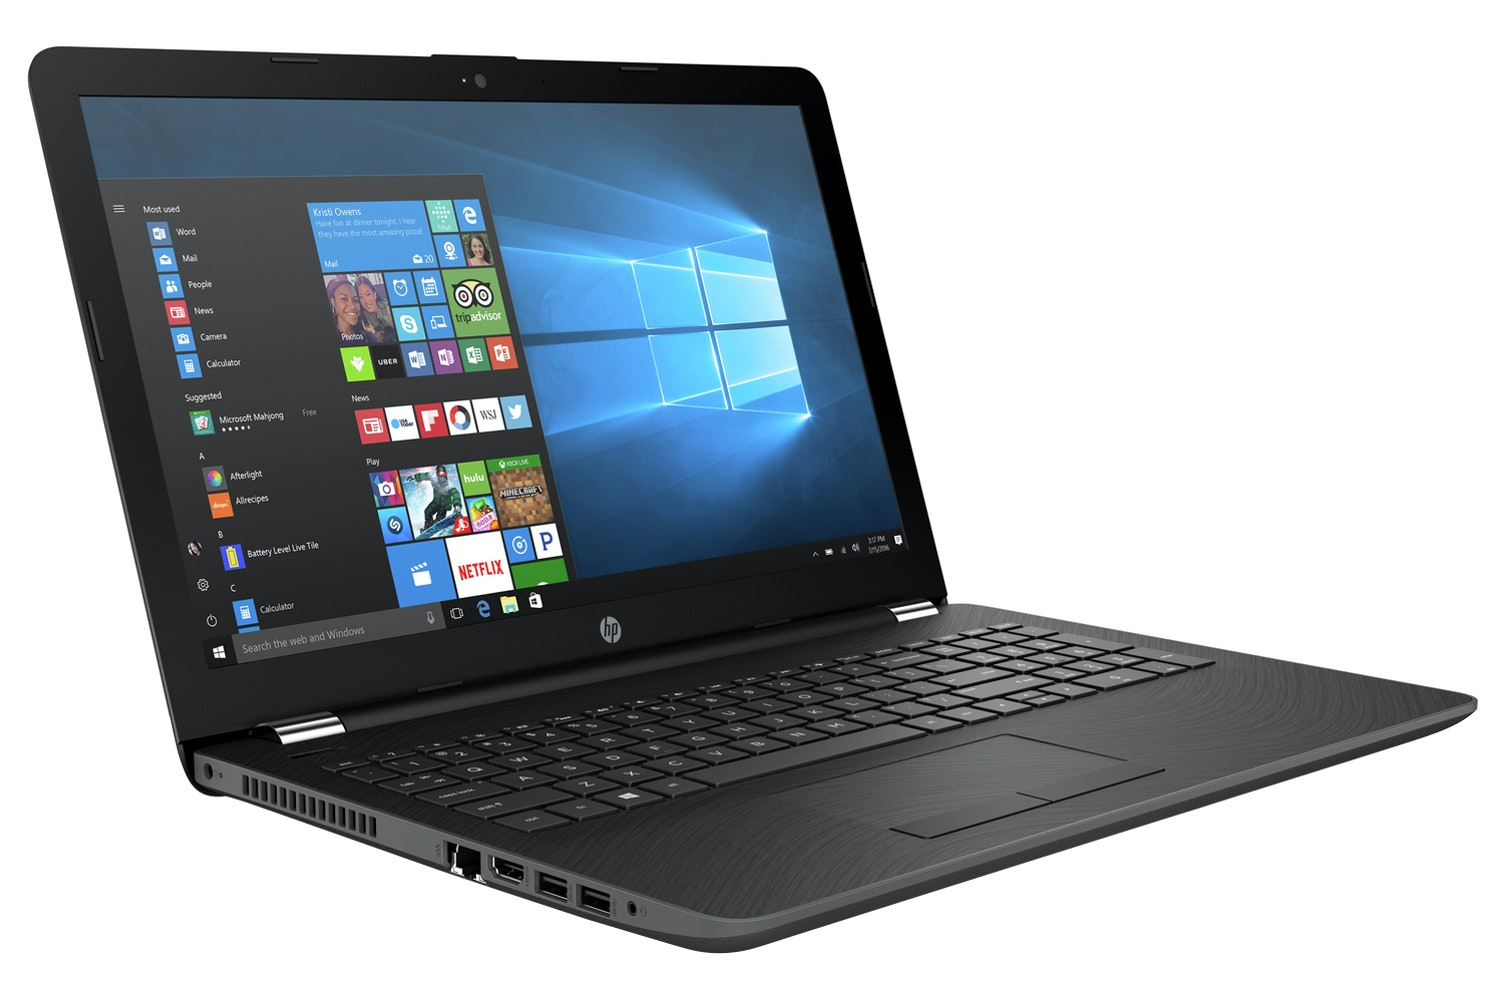 HP Notebook 15.6"